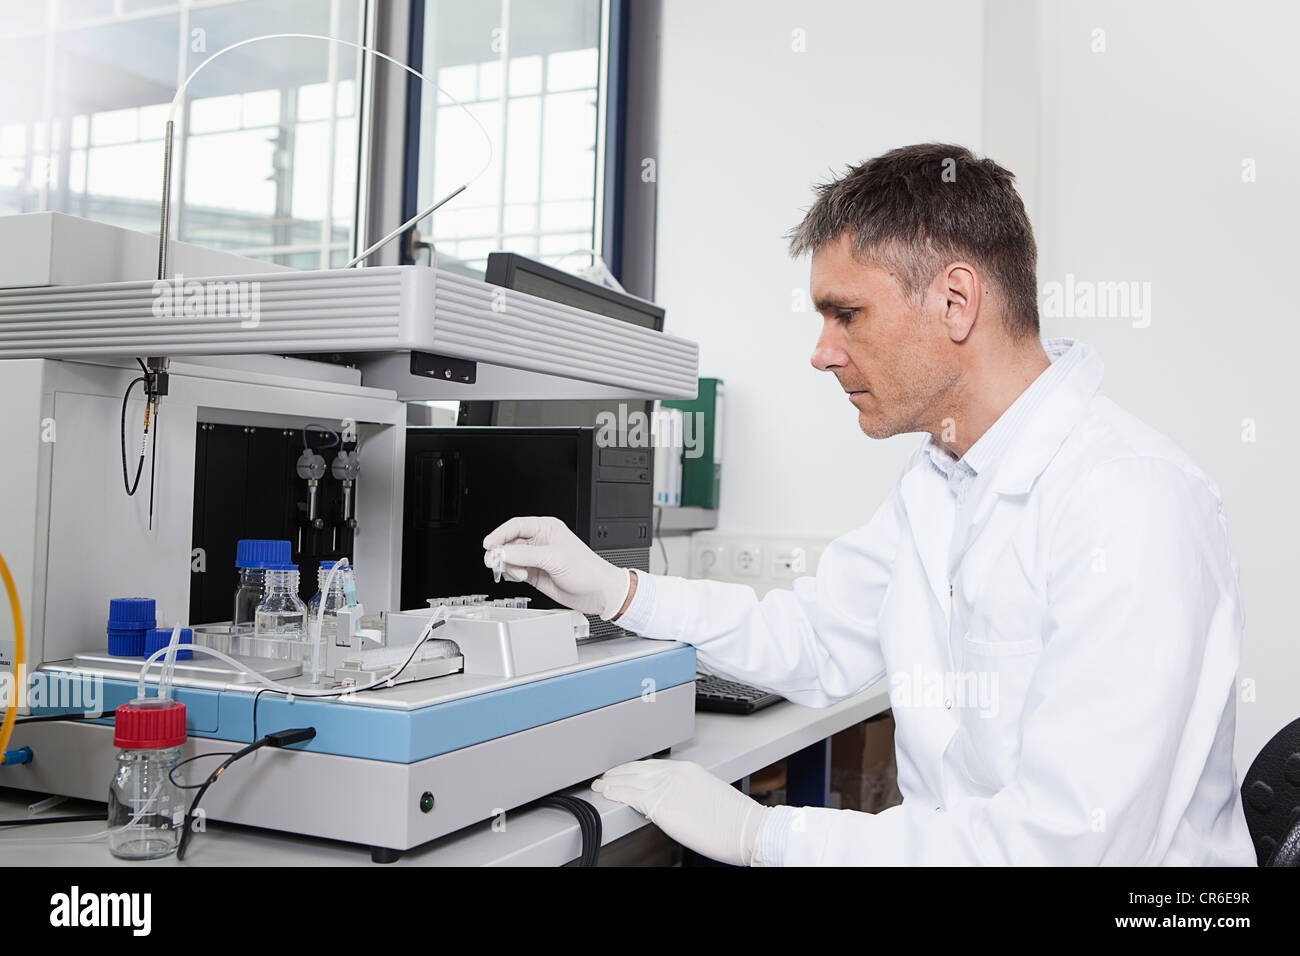 Germany, Bavaria, Munich, Scientist analysing test tubes with robotic equipment in laboratory - Stock Image